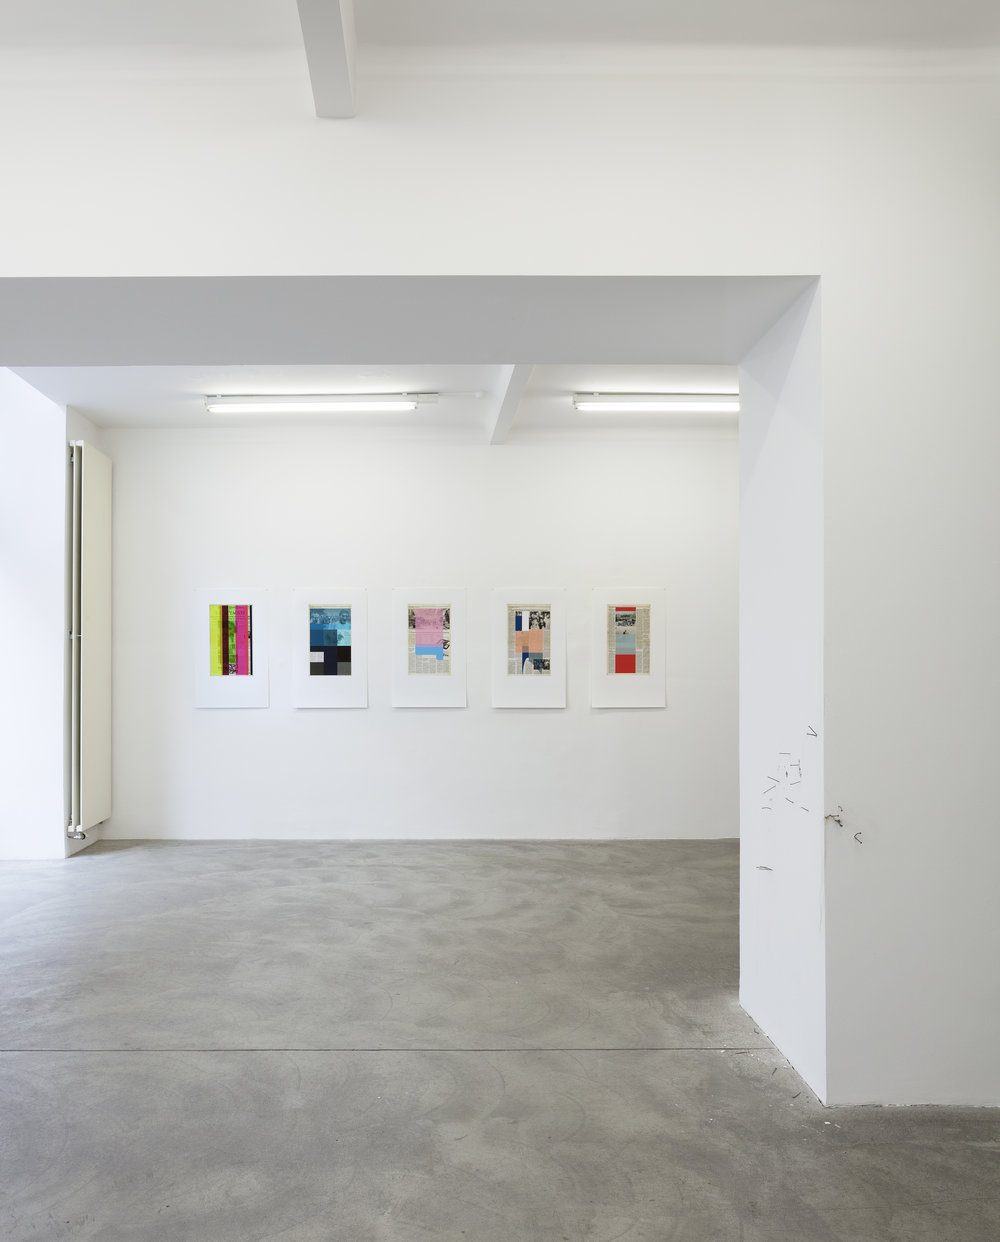 Exhibition View, Galerie Martin Janda, curated by_Joe Scanlan, 2015, Photo: Markus Wörgötter